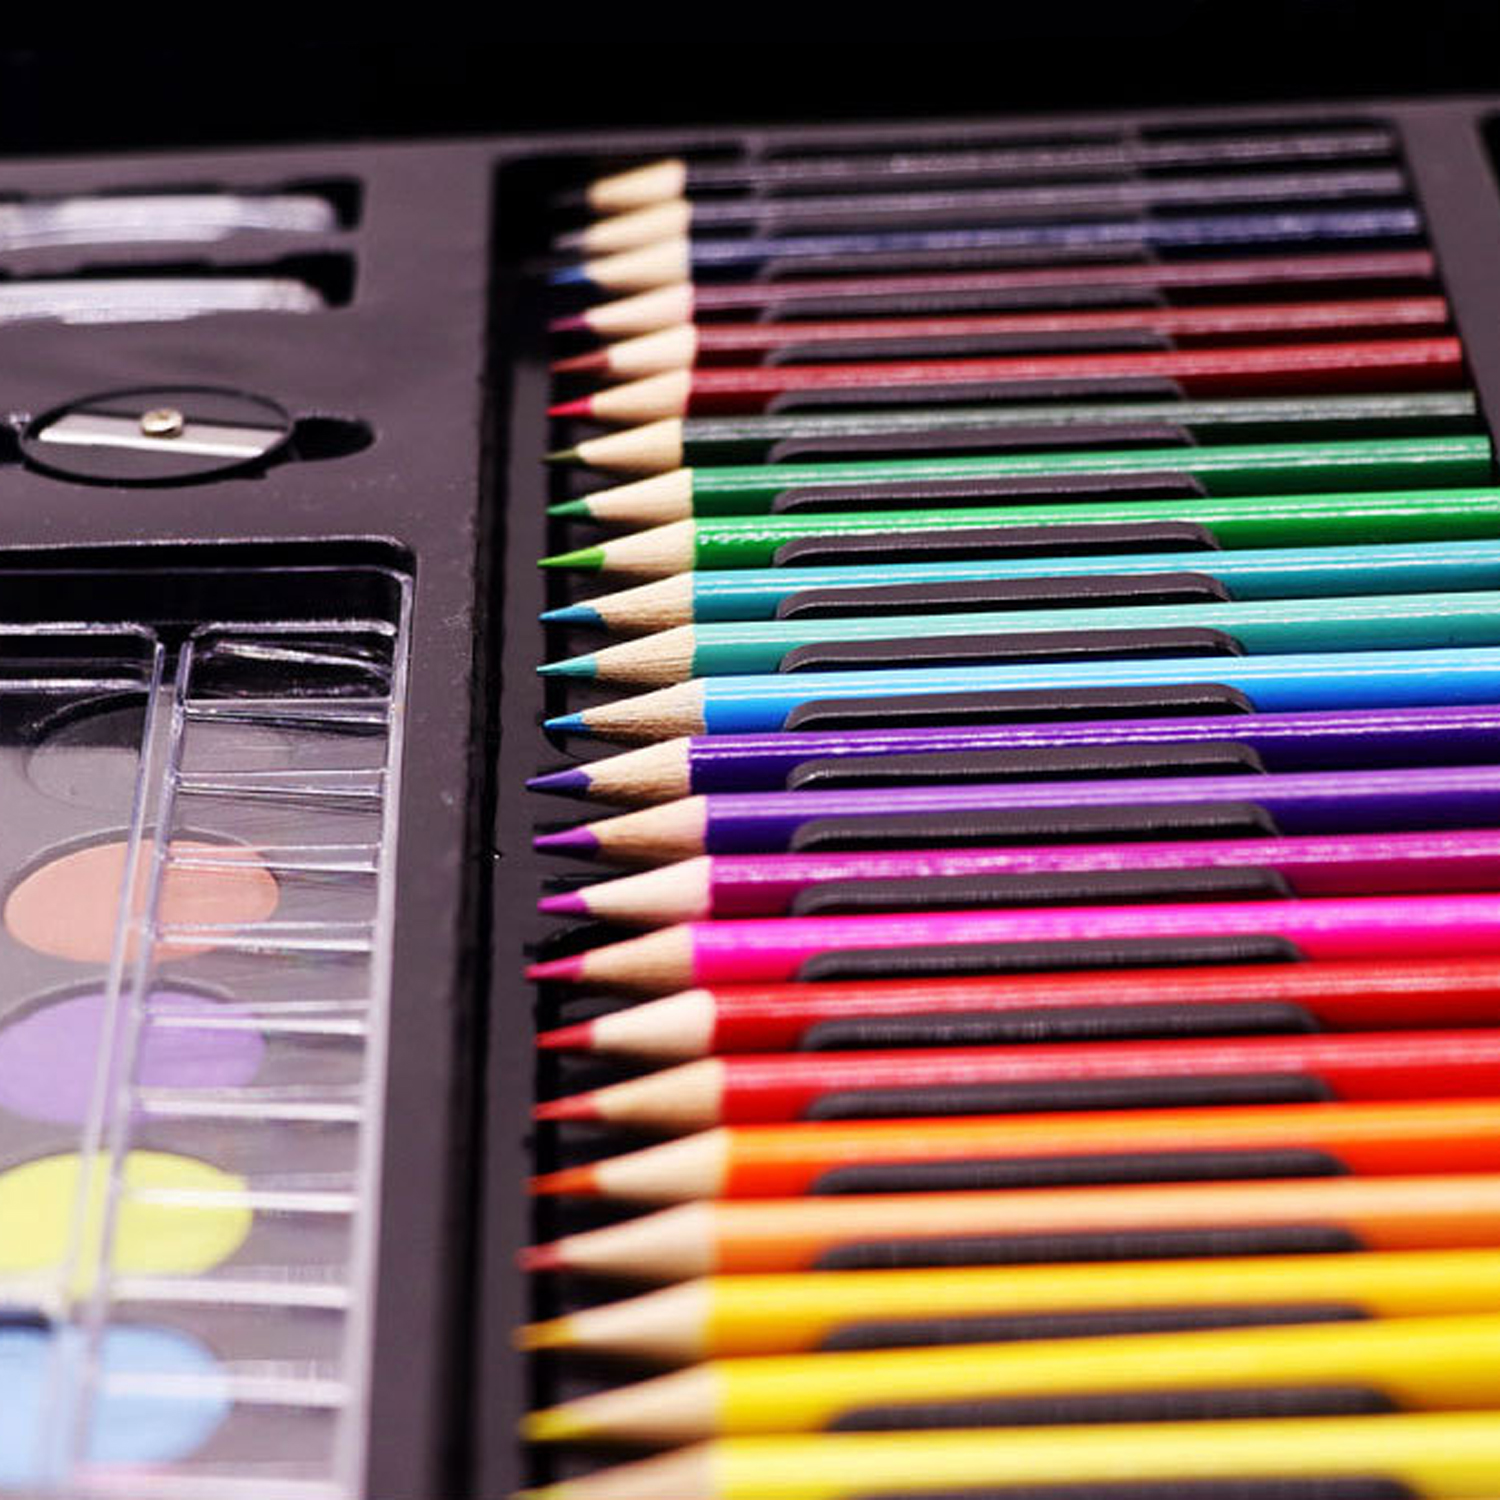 168PCS Painting Drawing Art Artist Set Kit Water Color Pen Crayon Oil Pastel Painting Tool Supplies Kids Stationery Gift Set 4